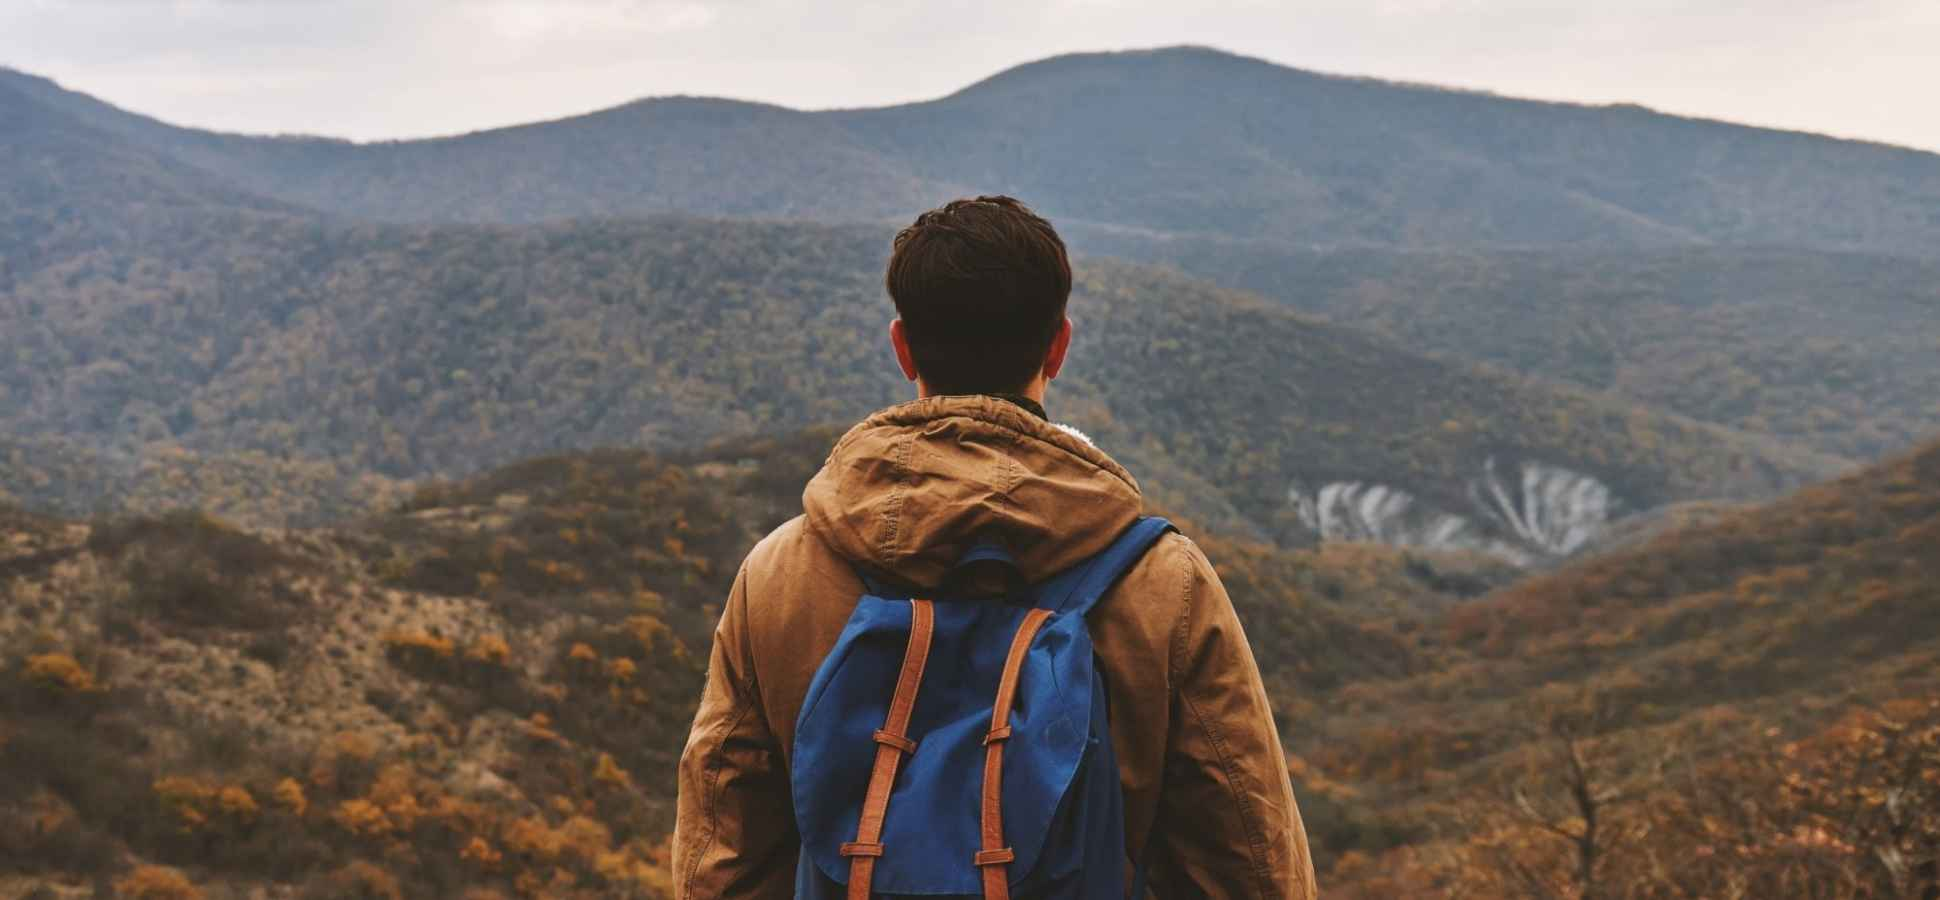 7 Life Lessons You Must Learn Before It's Too Late